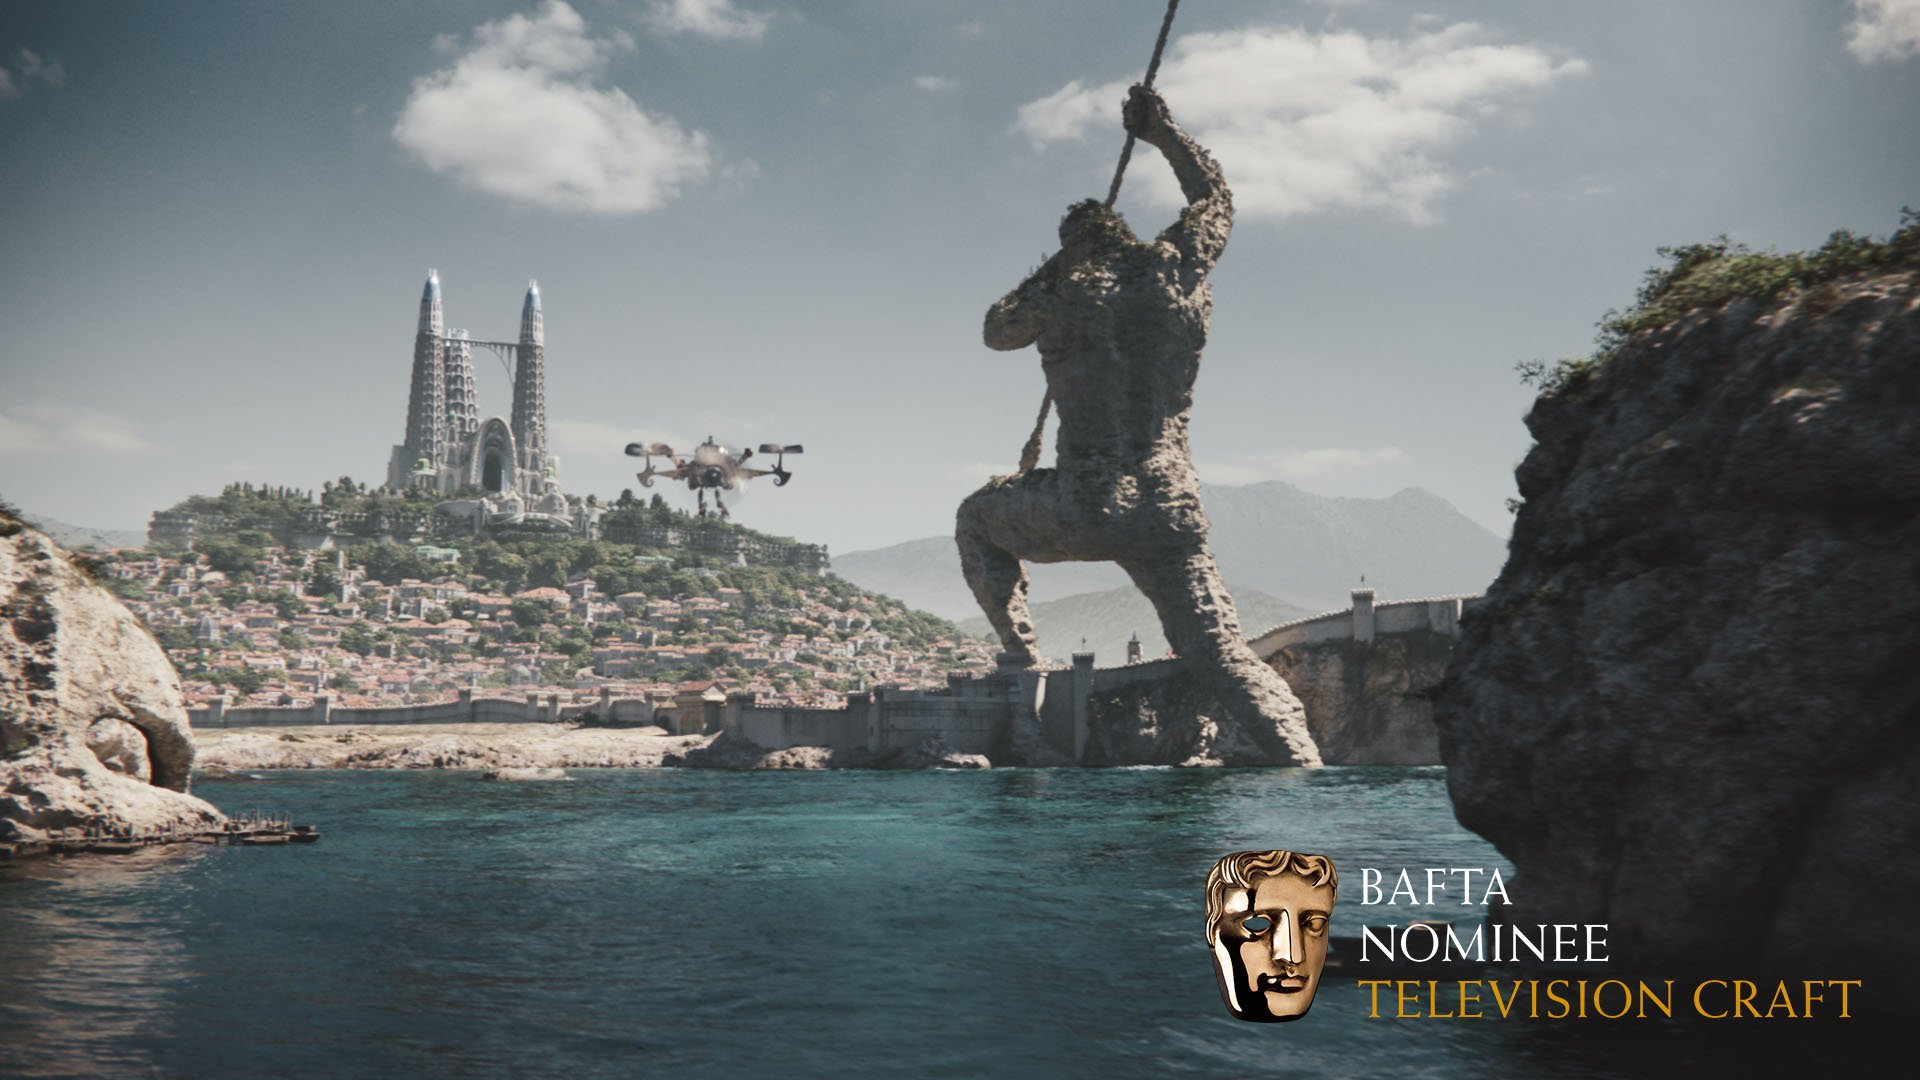 Bafta TV Craft Nomination for Emerald City